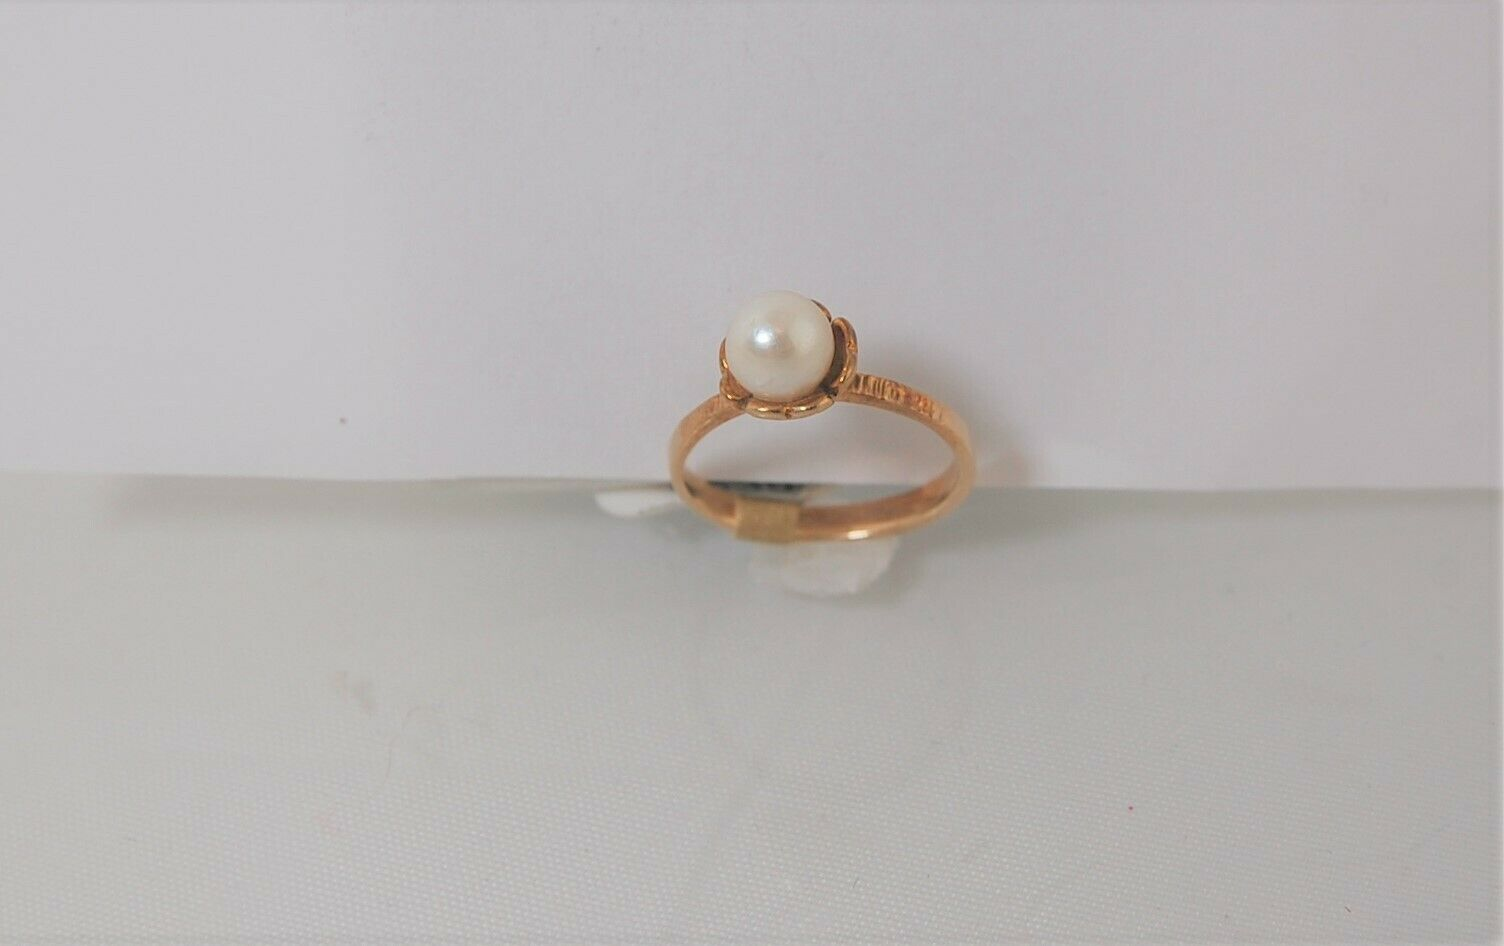 (45353) 10k gold ring with pearl like stone set in flower design